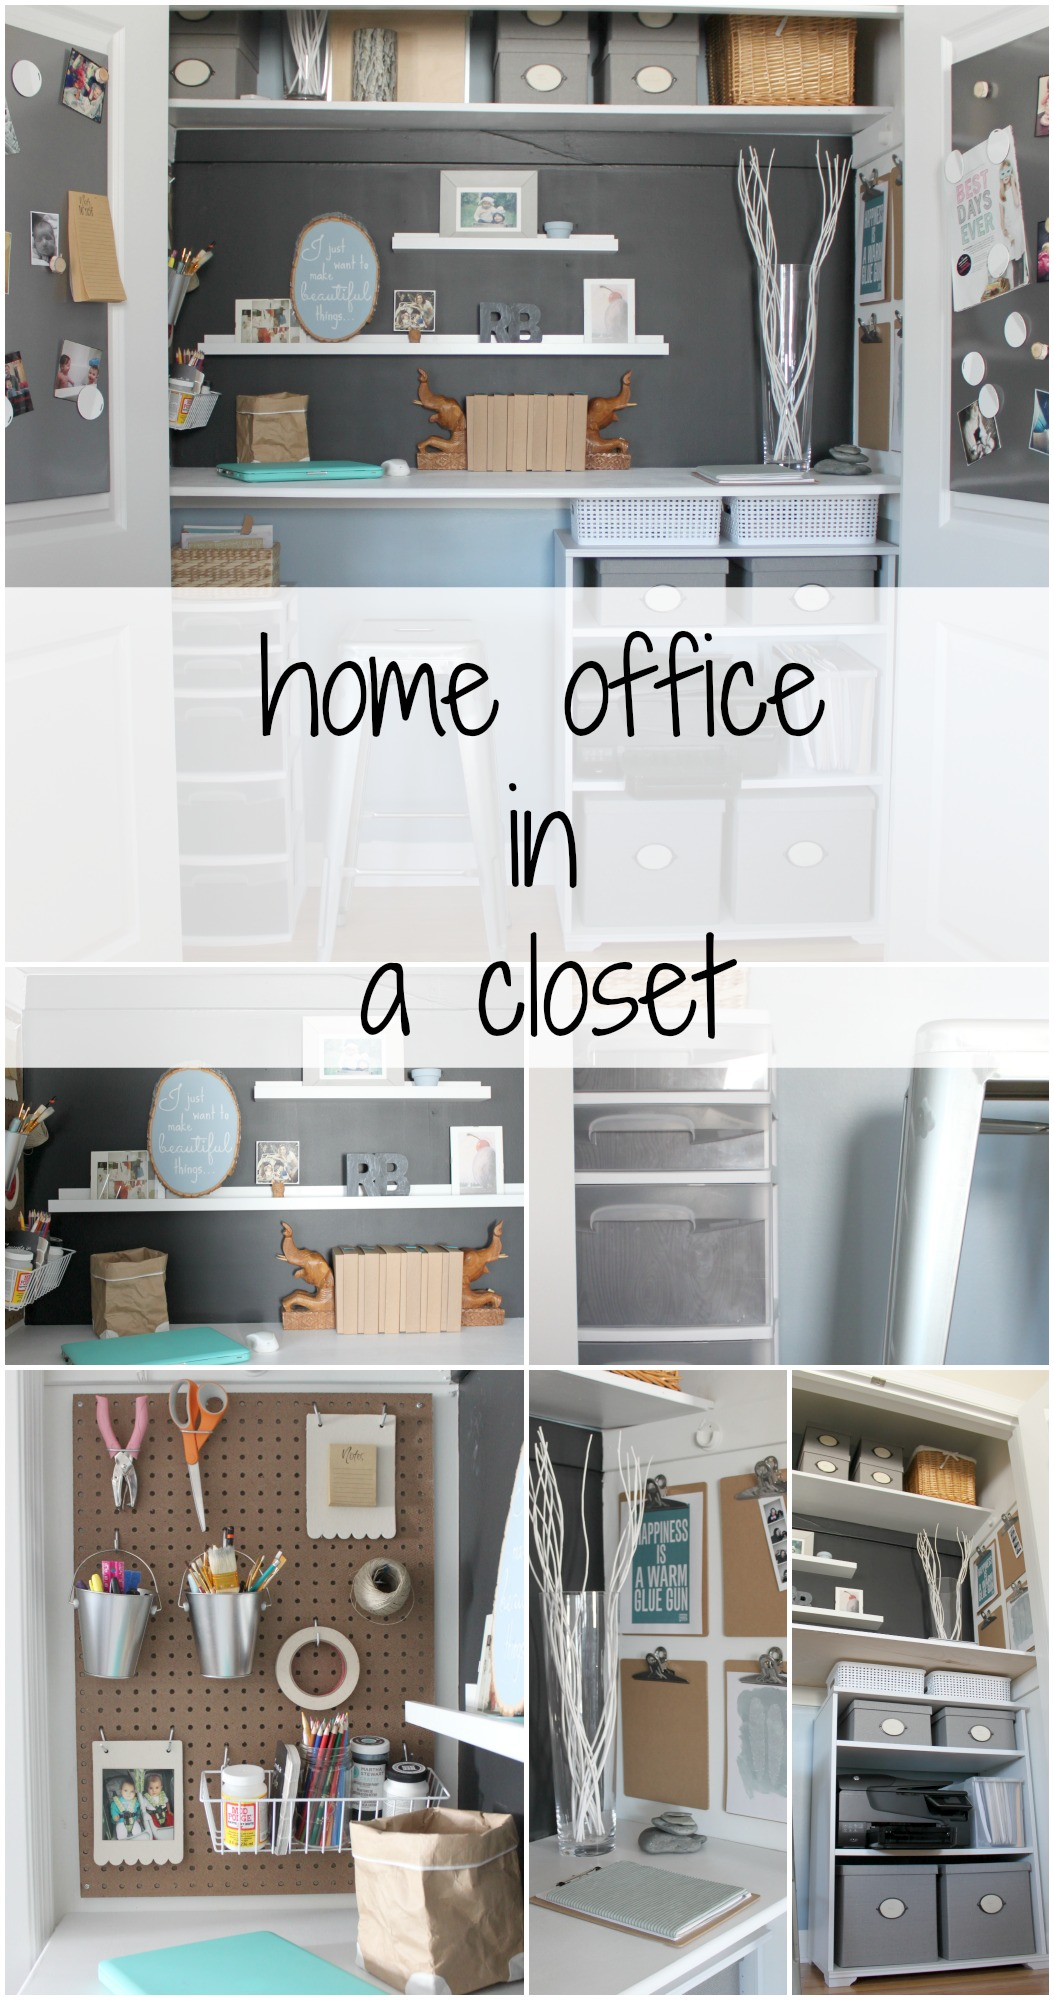 Home Office In A Closet How To Make The Most Of A Little